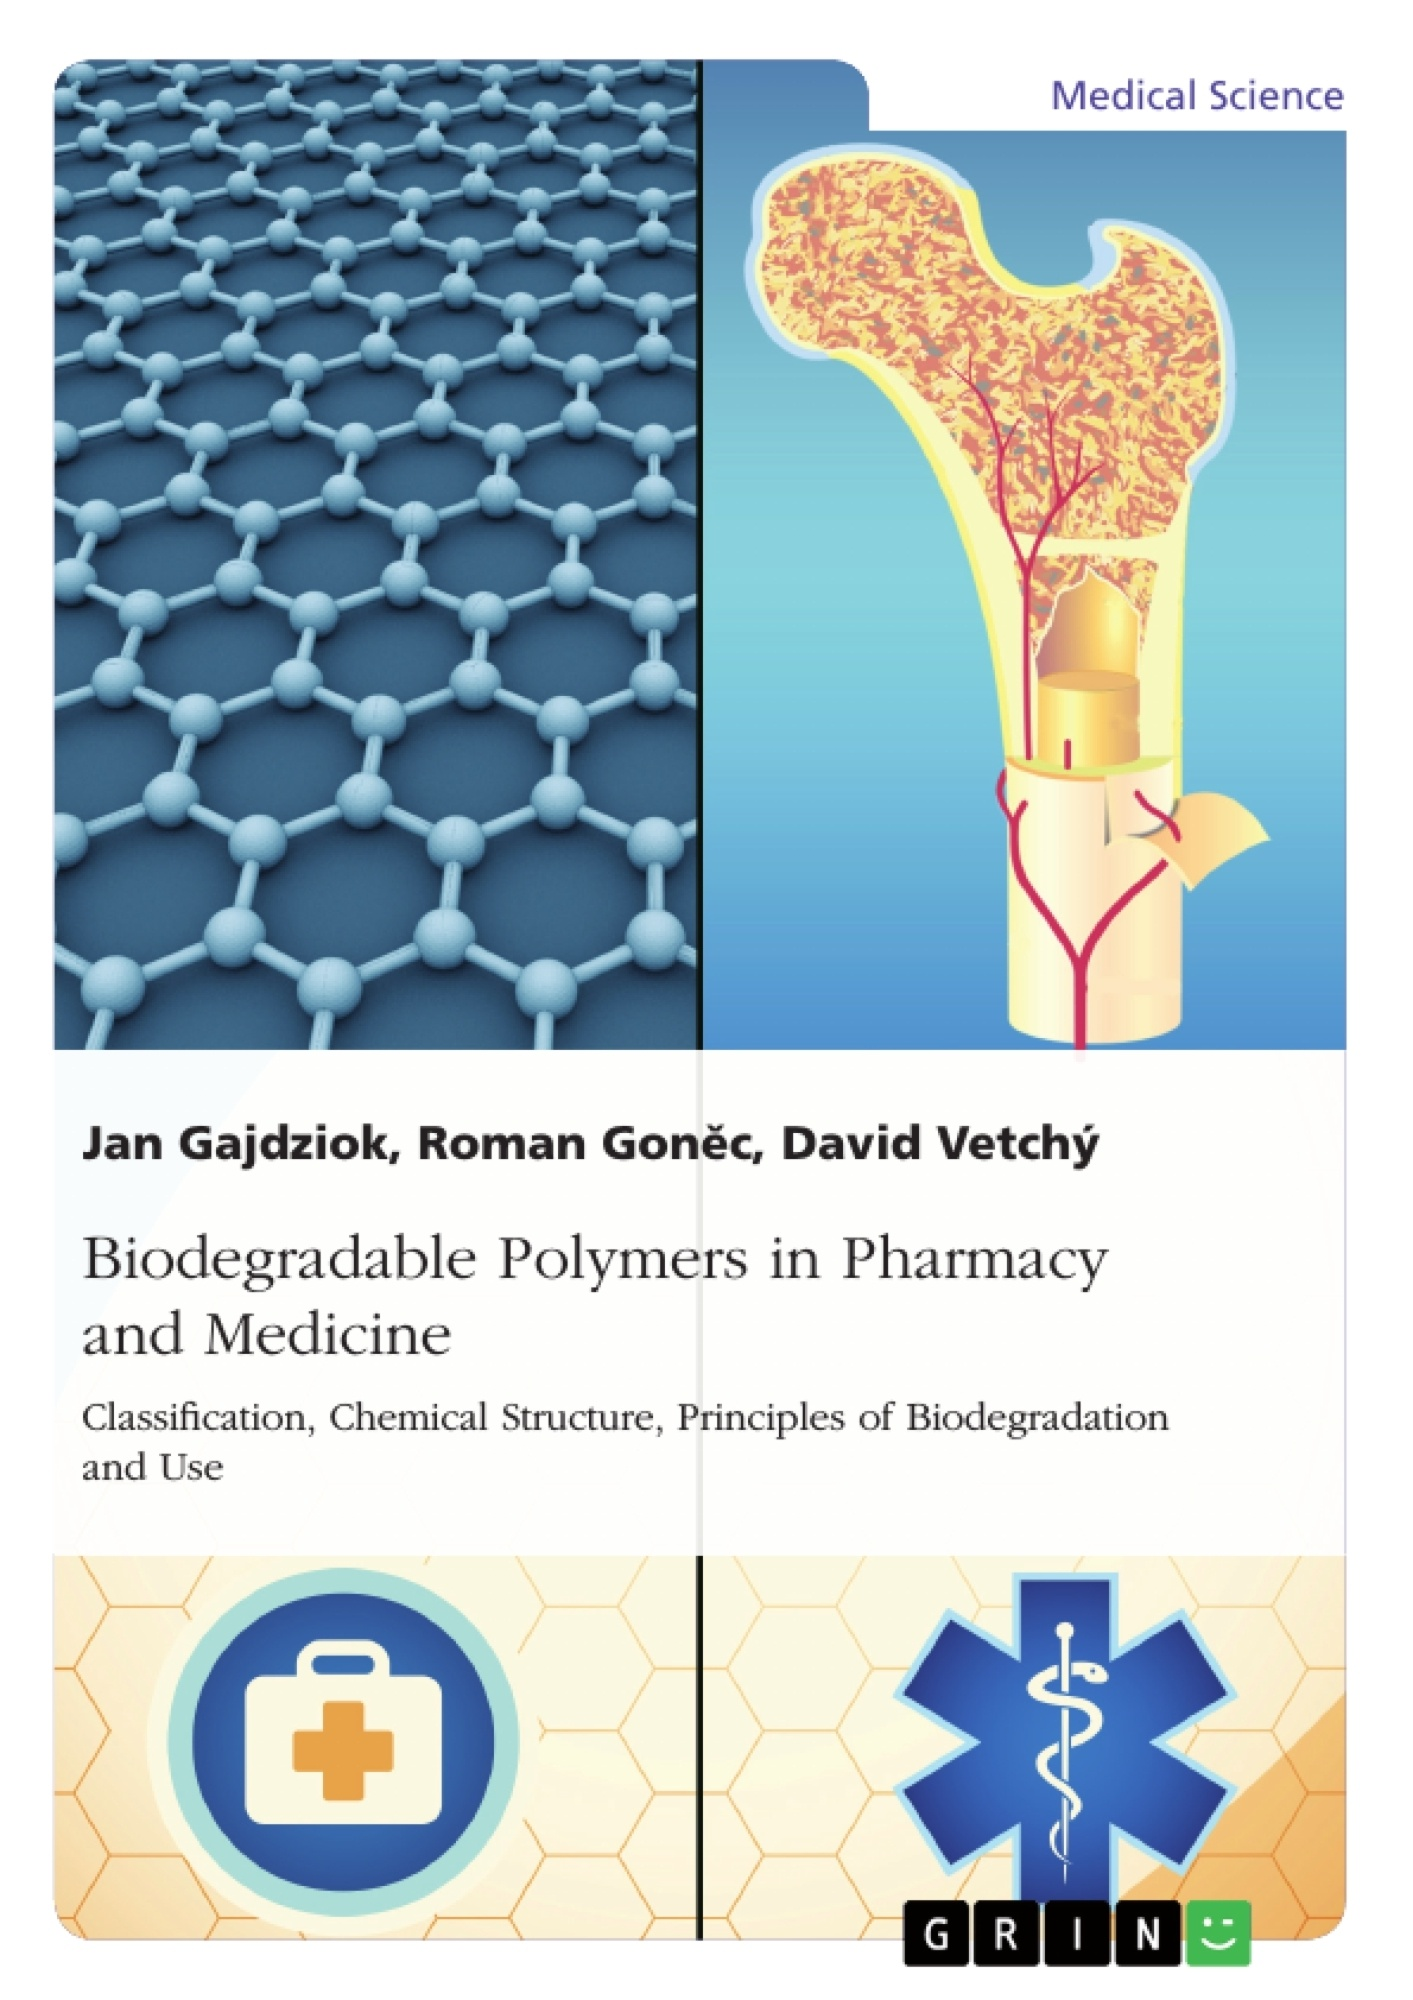 Title: Biodegradable Polymers in Pharmacy and Medicine. Classification, Chemical Structure, Principles of Biodegradation and Use